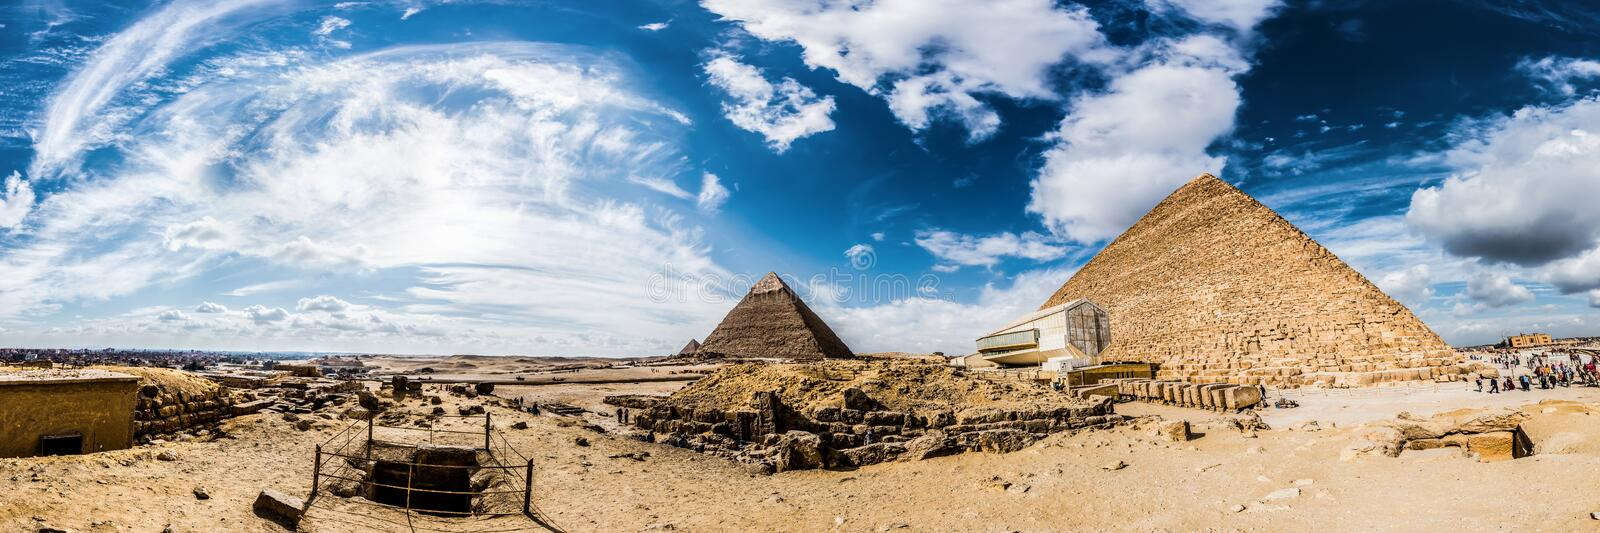 The great pyramids of Giza, Egypt royalty free stock image